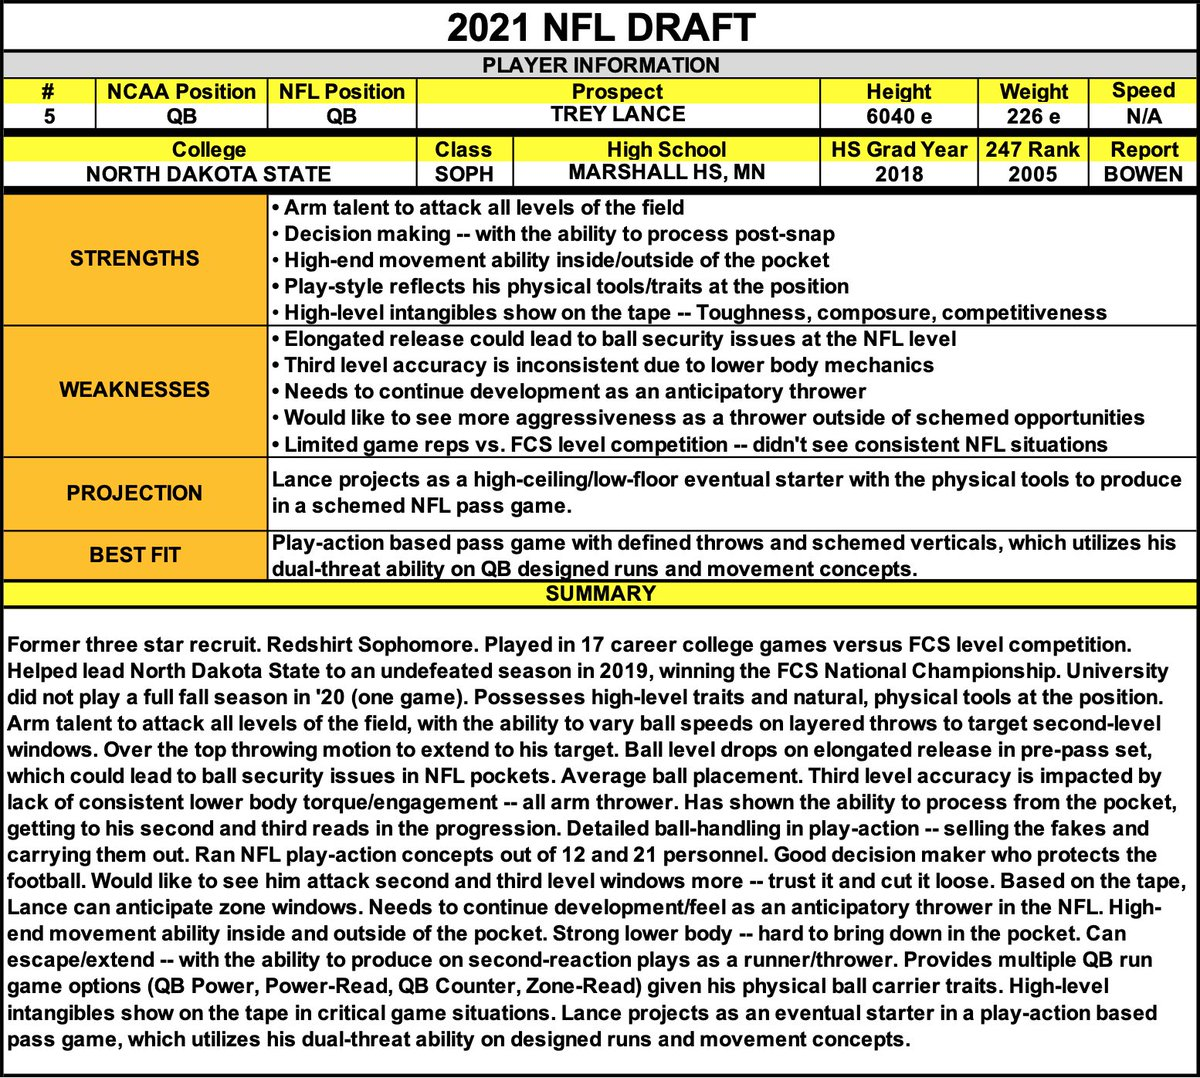 My #NFL draft report on North Dakota State QB Trey Lance (based on tape study only).   High-traits prospect with arm talent & the ability to diagnose/process post-snap.